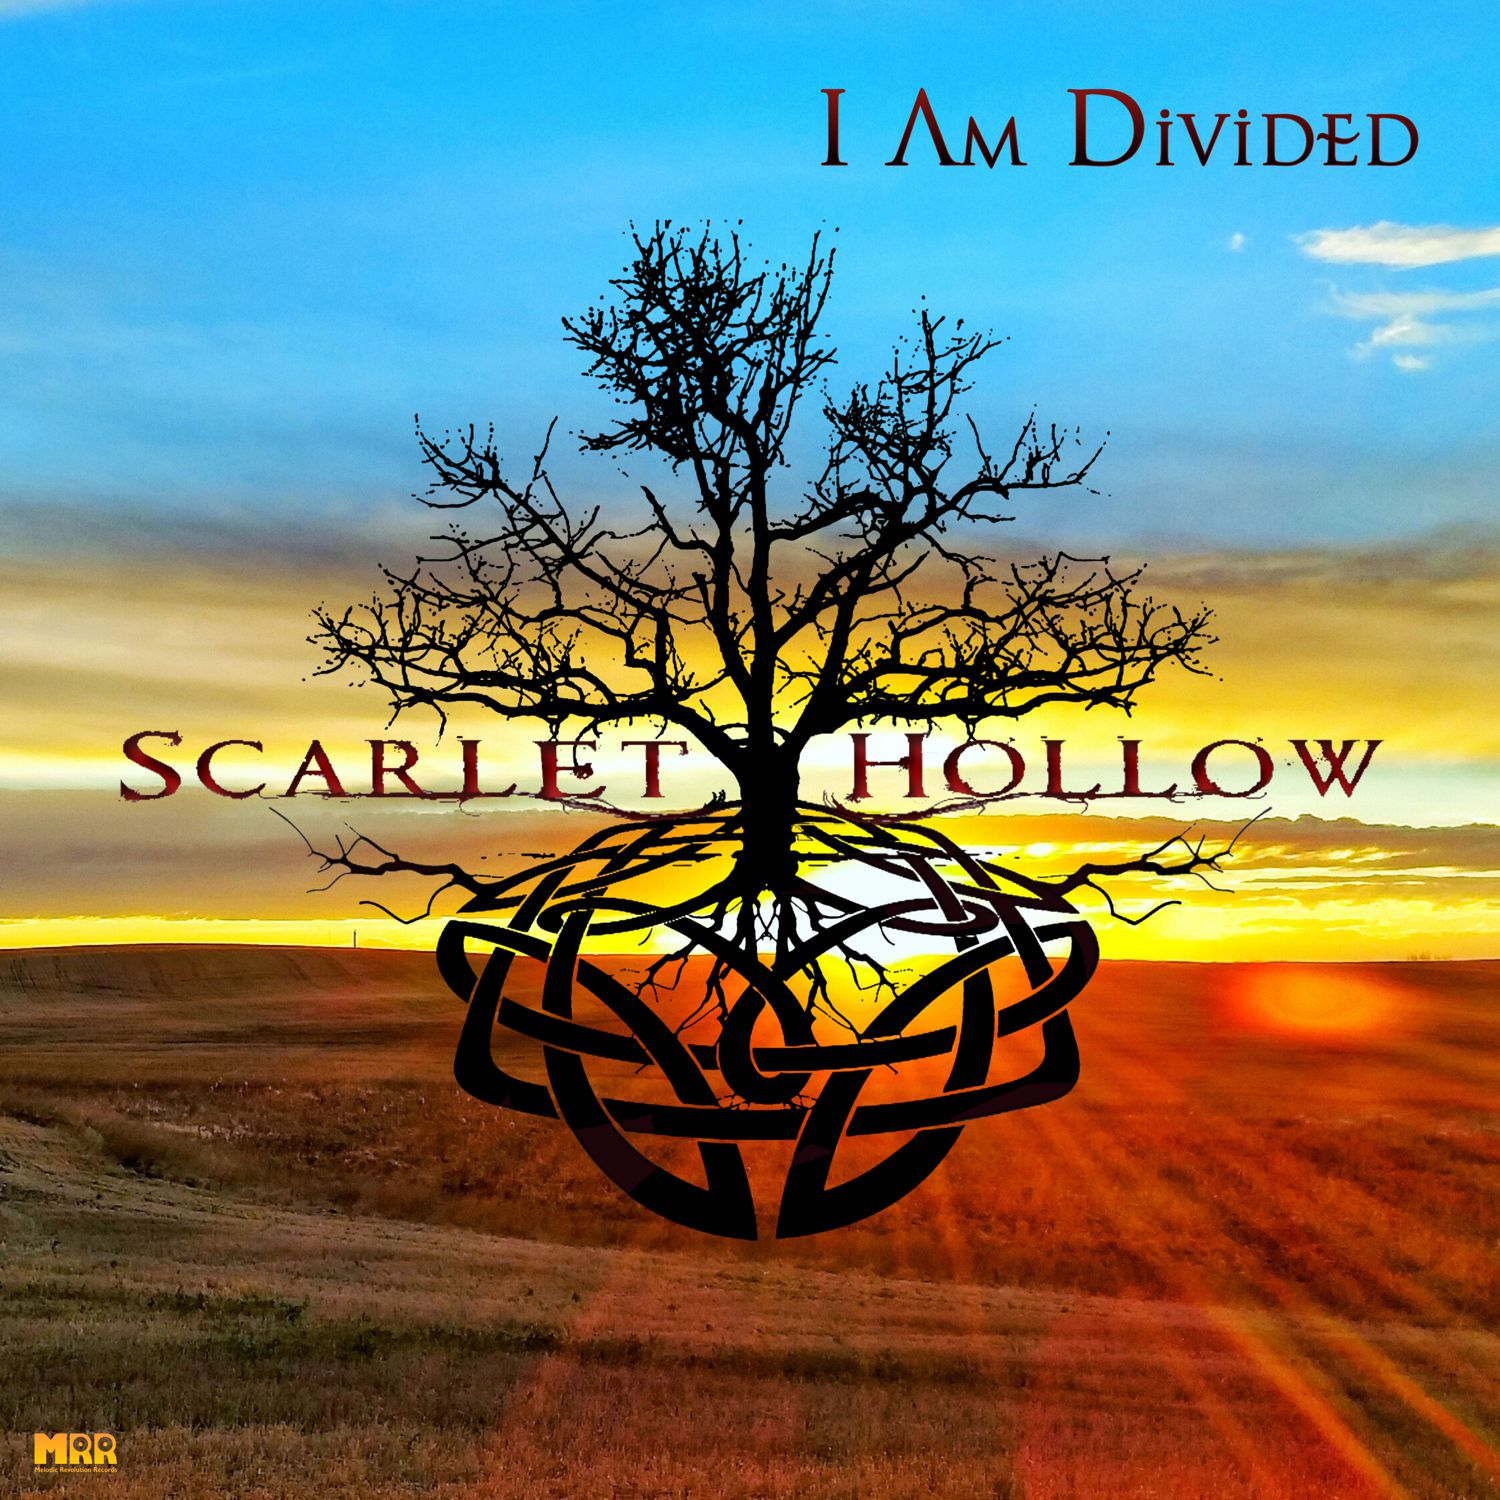 Scarlet Hollow - I Am Divided